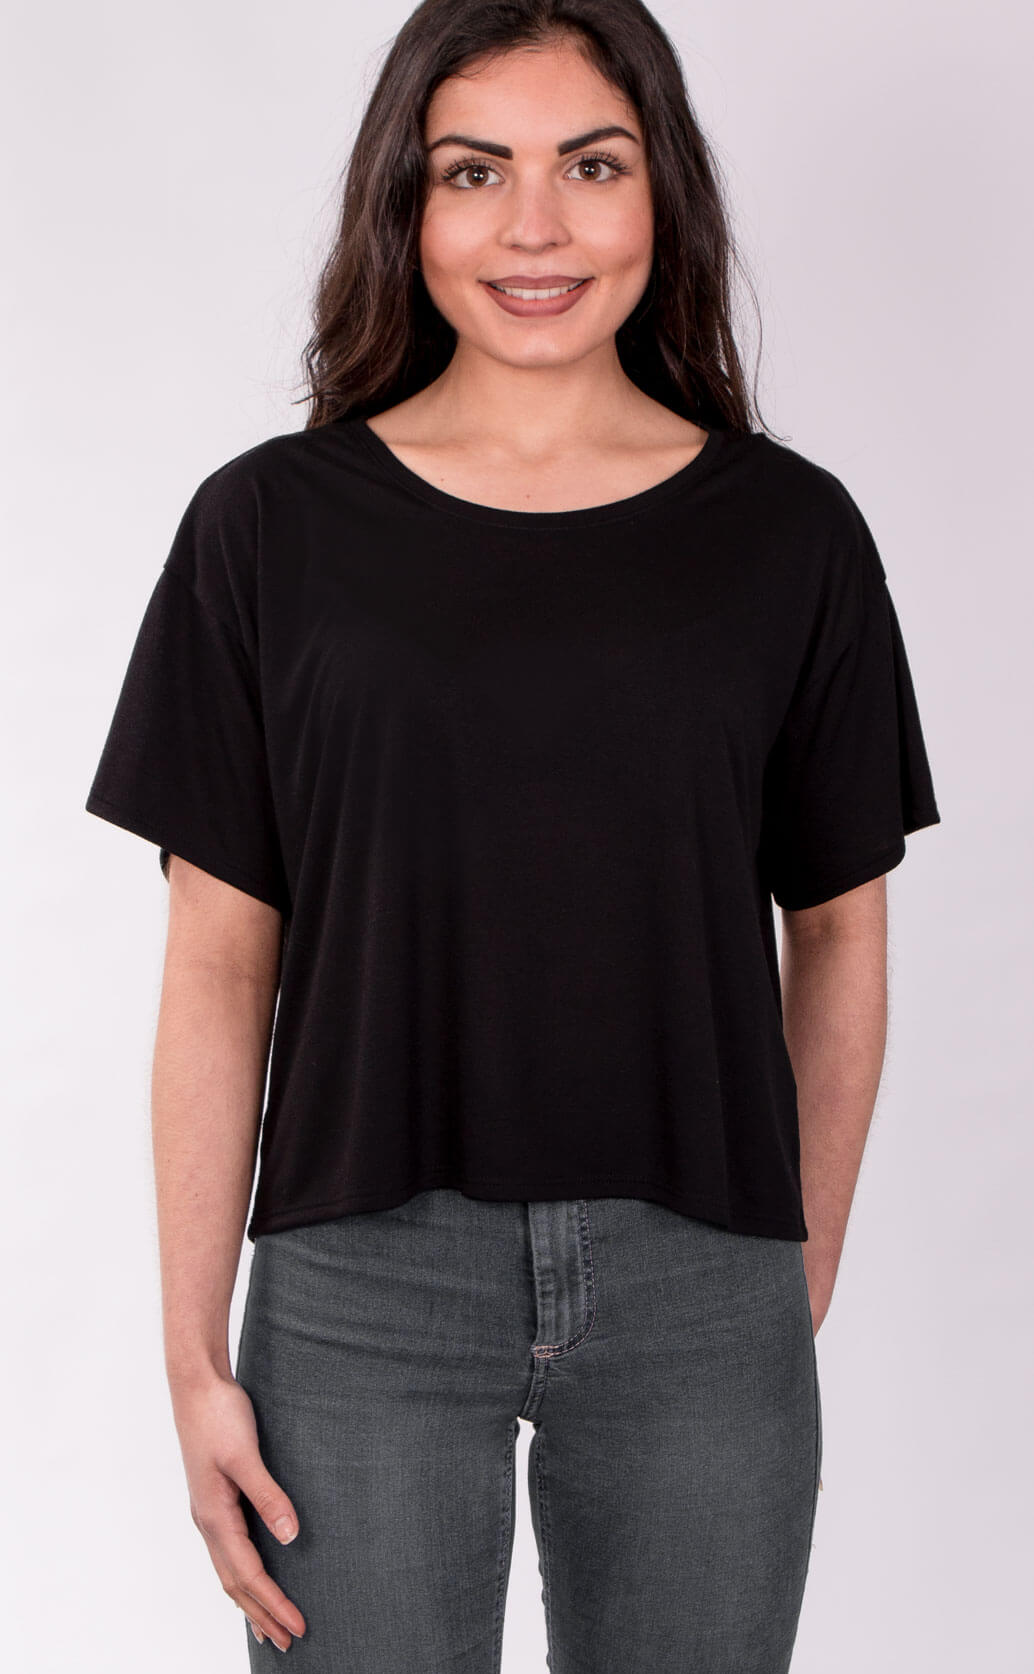 Size guide image for Flowy Boxy Tee shirt type. Shot from the front. Model is dressed in black